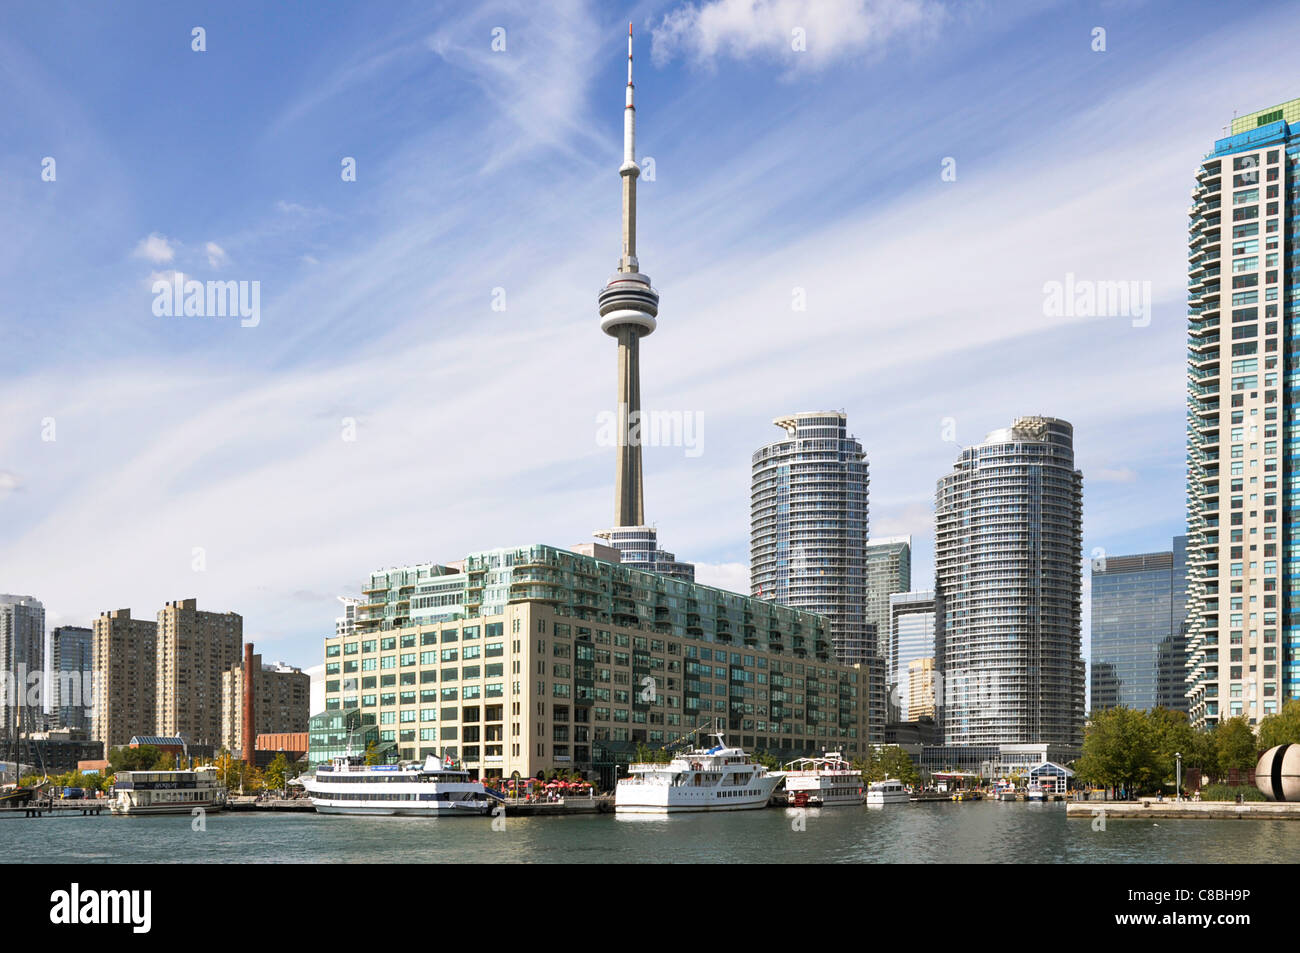 Toronto Skyline, with view of CN Tower and Highrise Condos - Stock Image